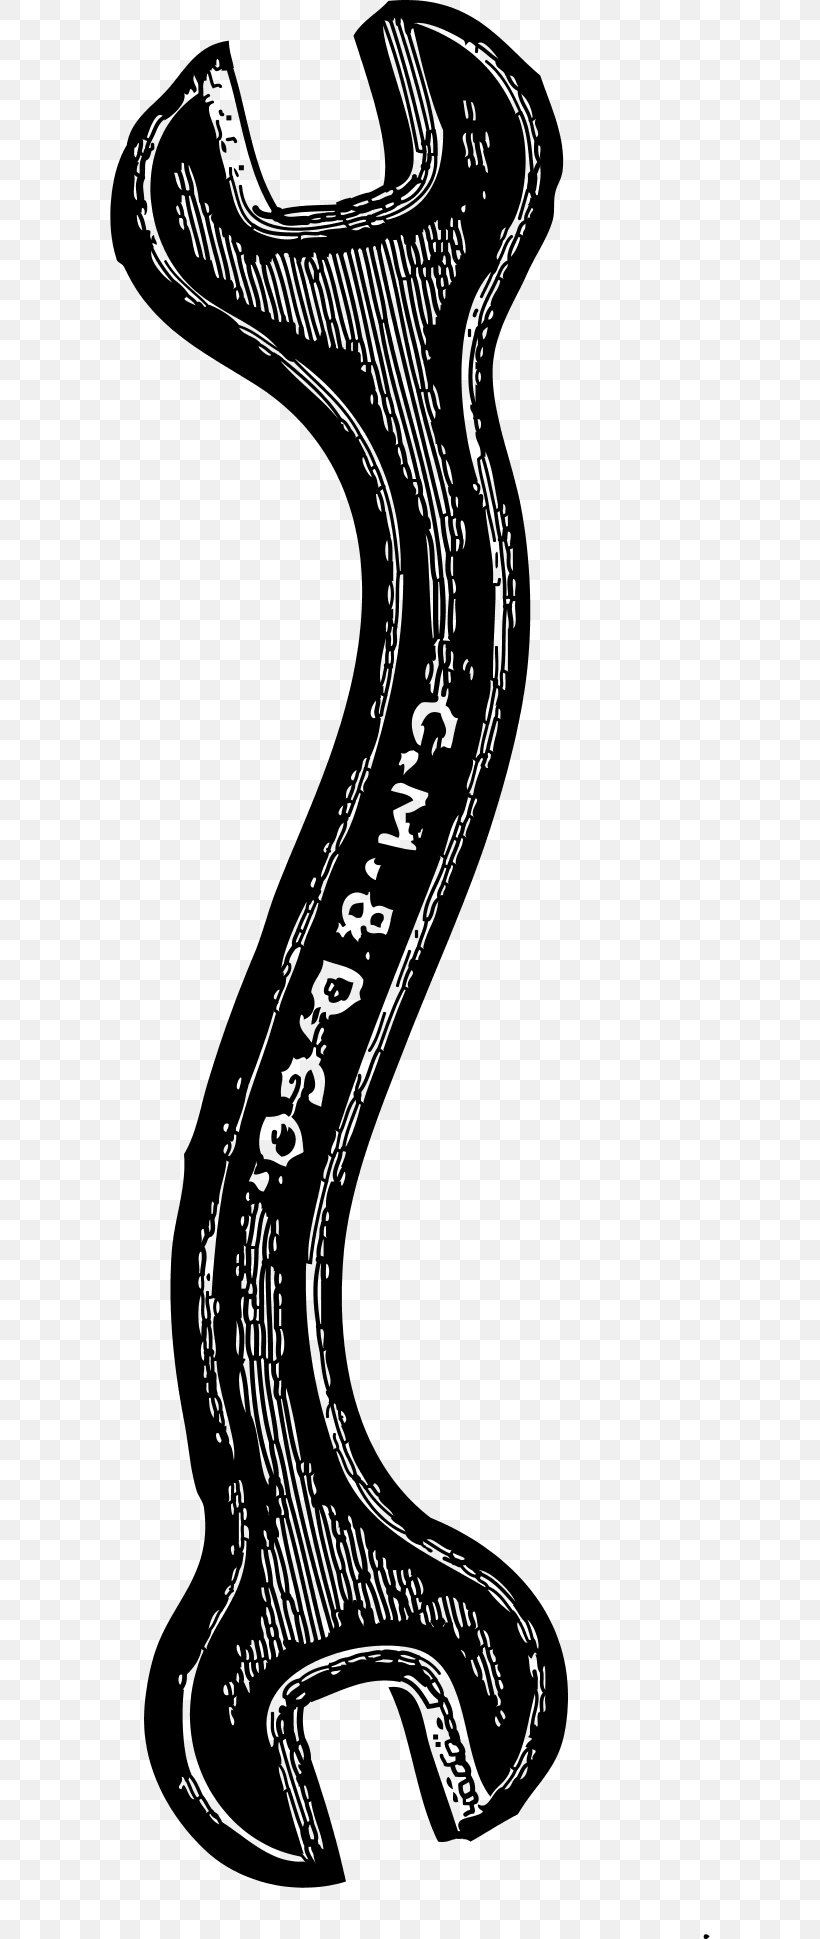 Hand Tool Spanners Adjustable Spanner Clip Art, PNG, 600x1939px, Hand Tool, Adjustable Spanner, Art, Black And White, Monkey Wrench Download Free